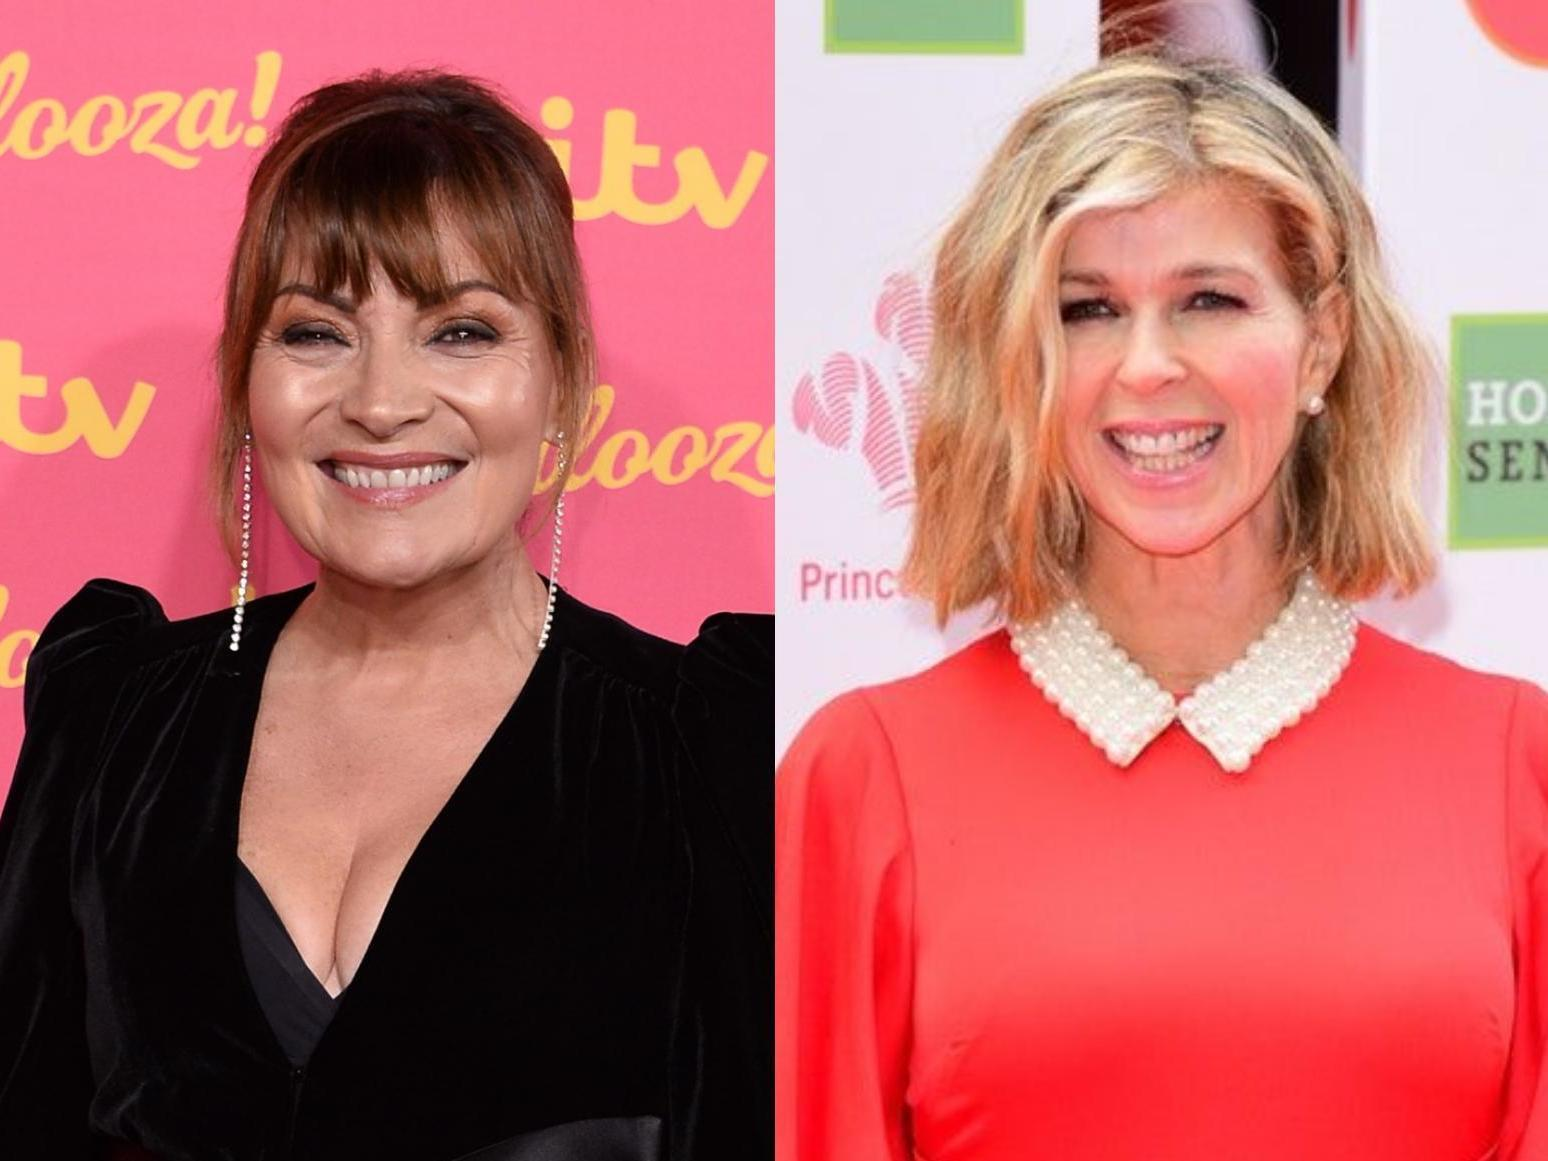 Lorraine Kelly Says She Is So Proud Of Kate Garraway Amid Husband Derek Draper S Coronavirus Battle The Independent The Independent